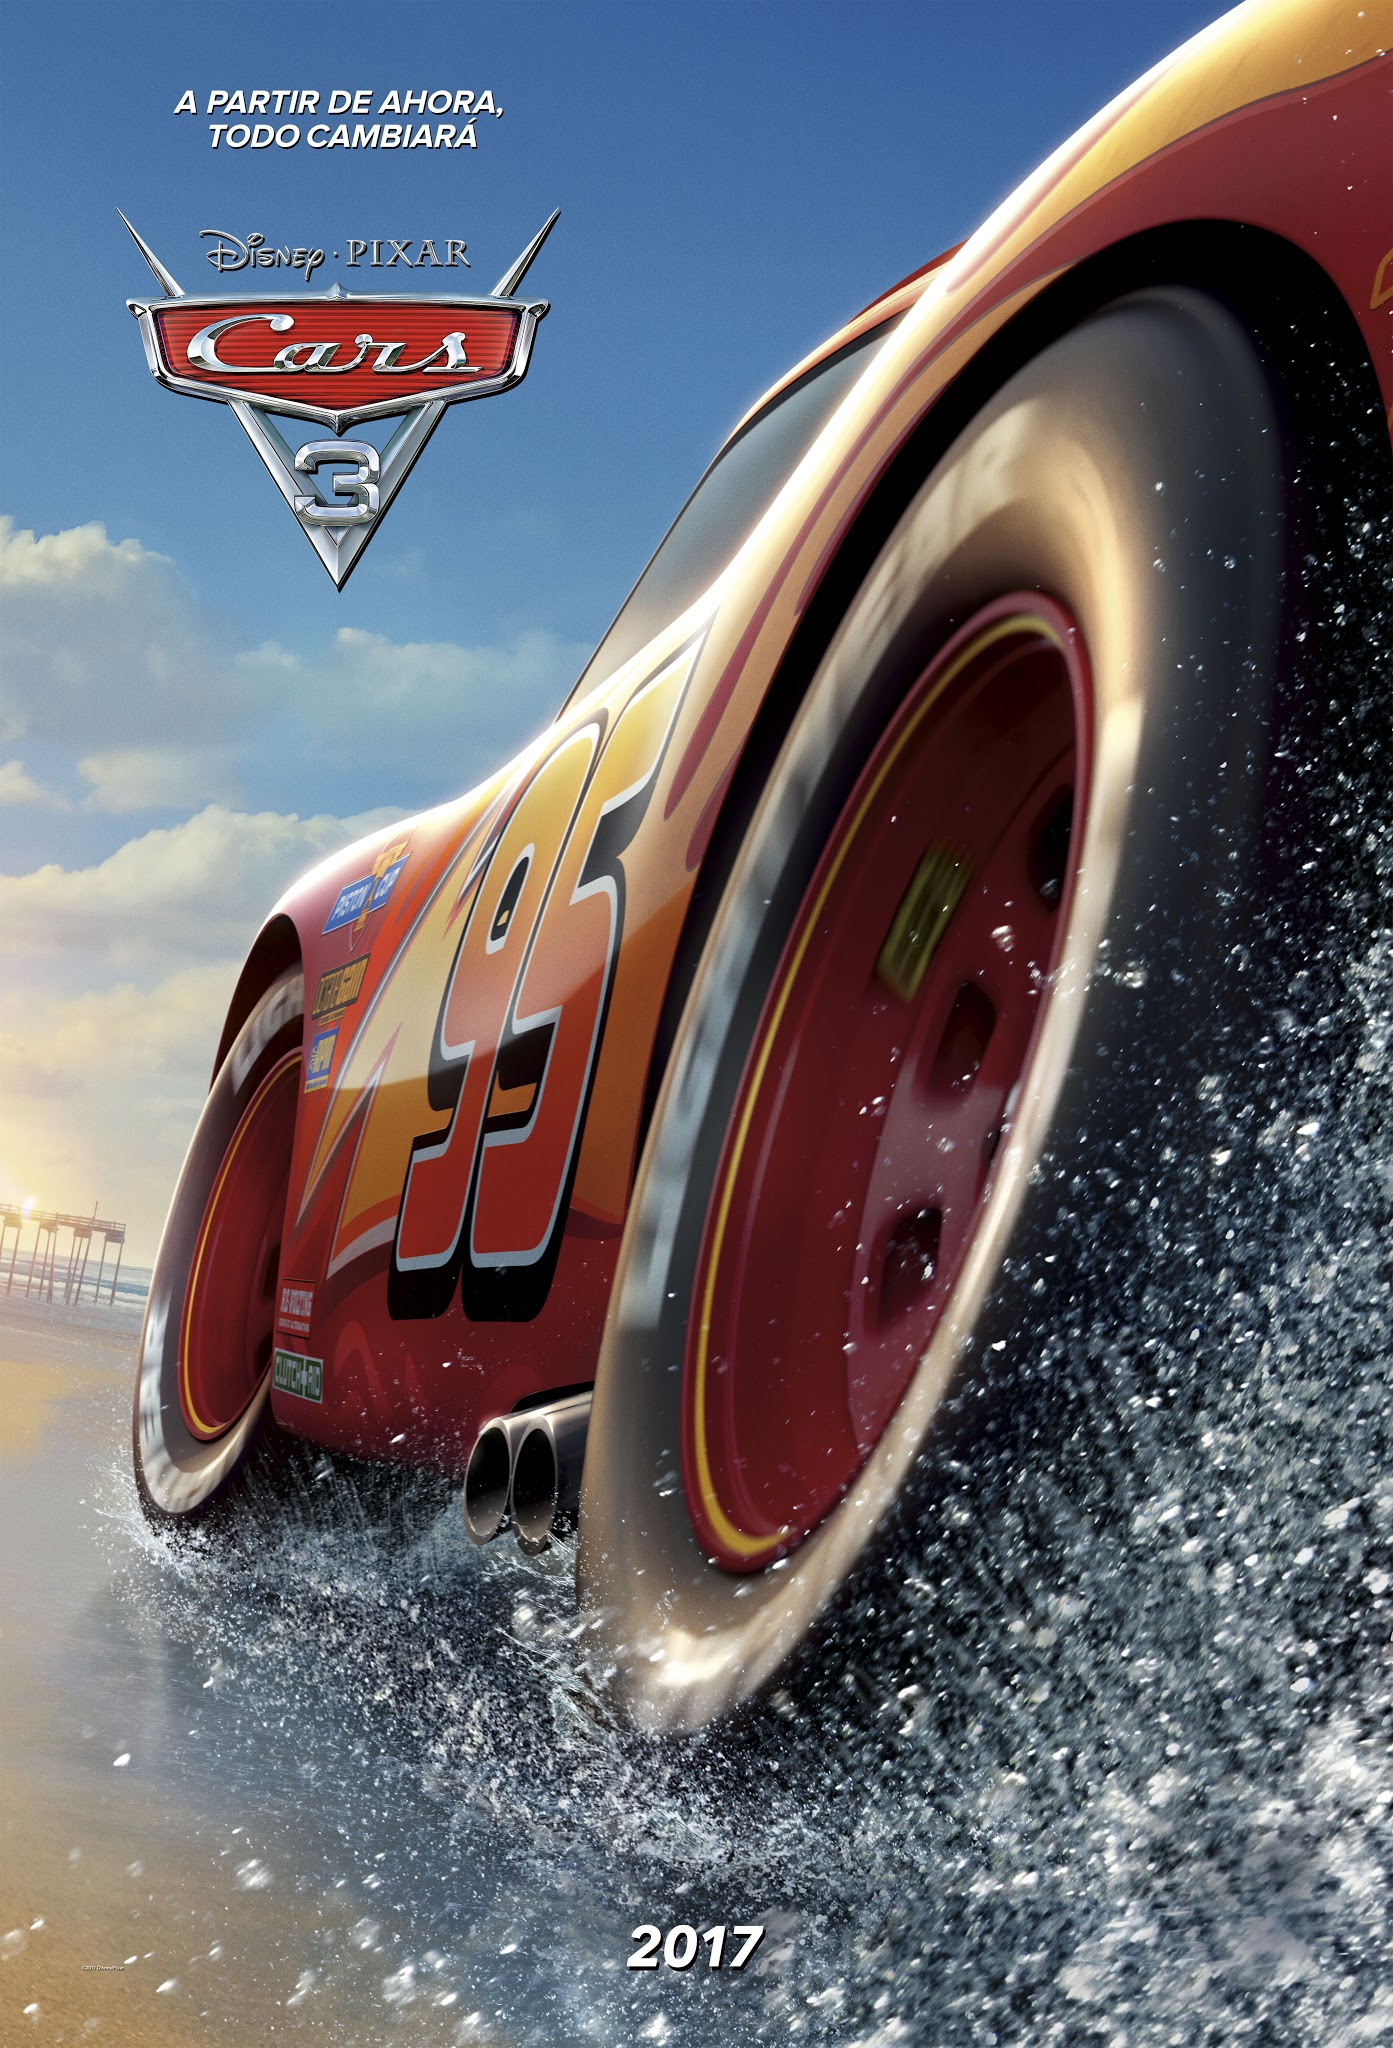 Cars_3_Teaser_1_Poster_Latino_JPosters.jpg